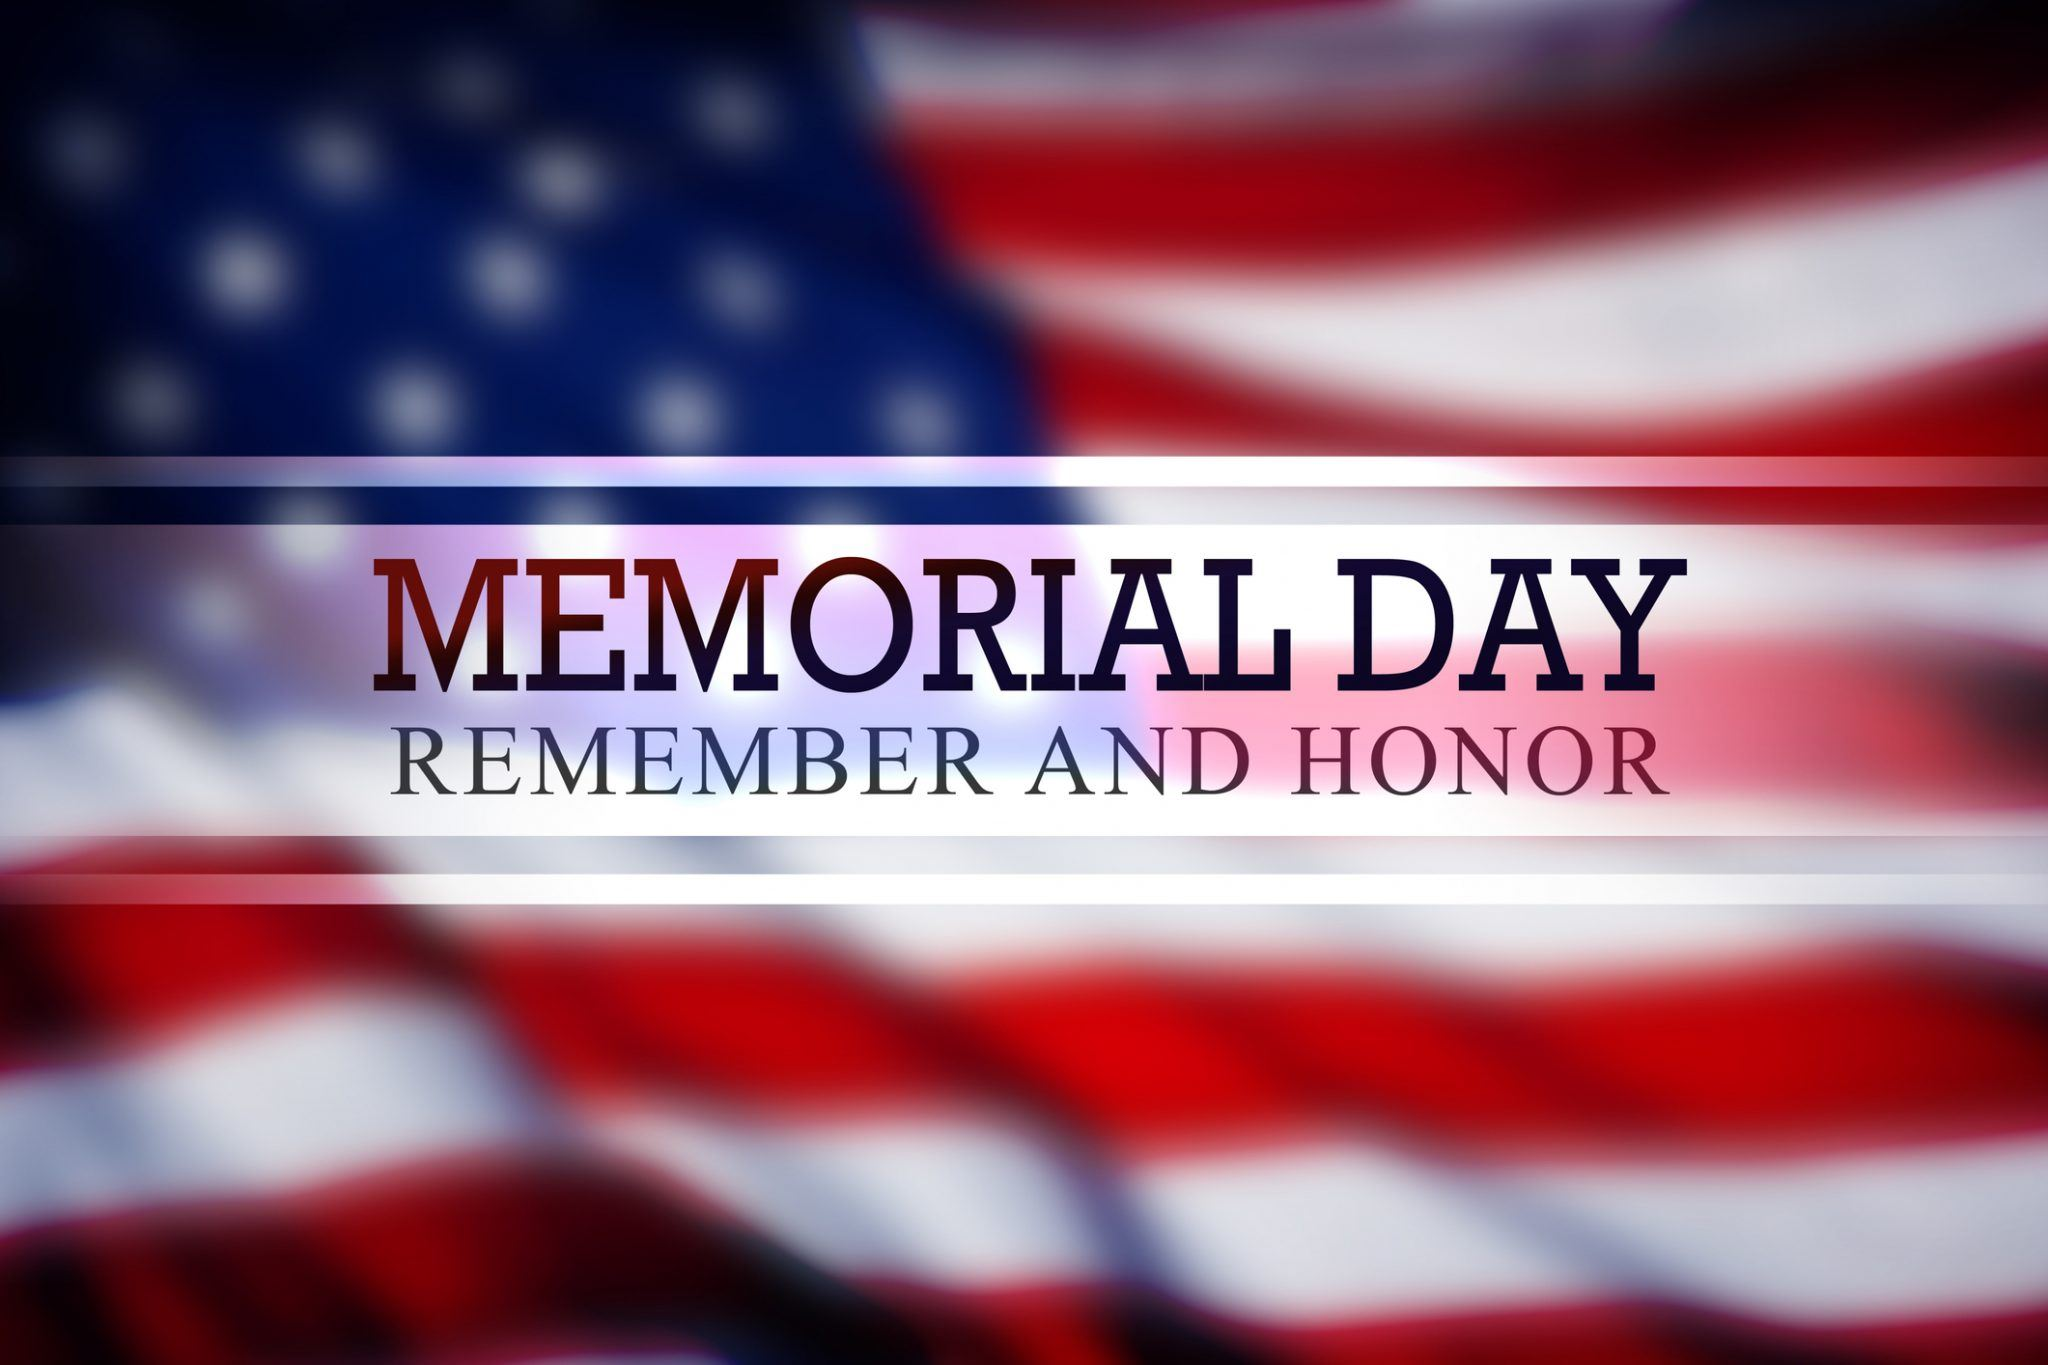 Memorial Day, Remember and Honor Image